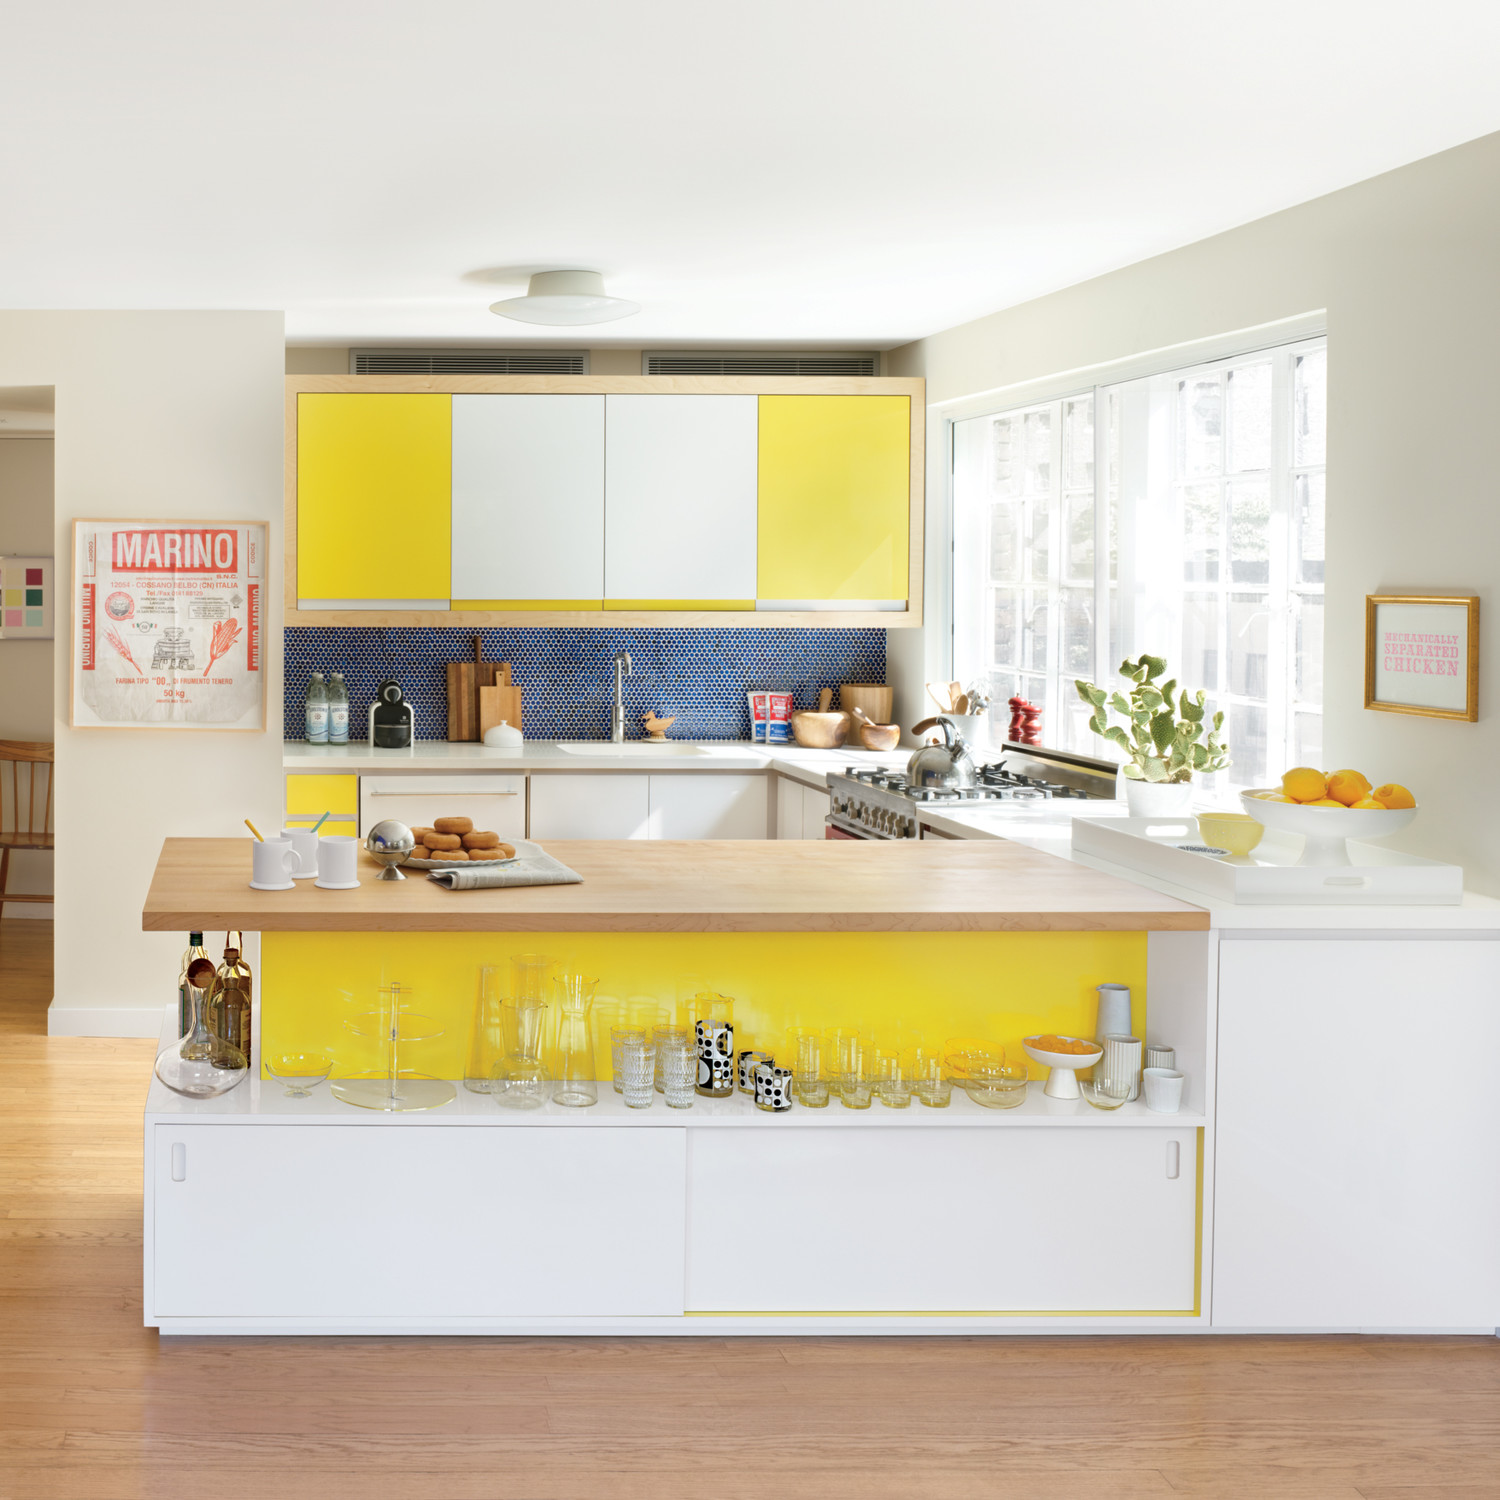 Kitchen Designs: Our Favorite Kitchen Styles